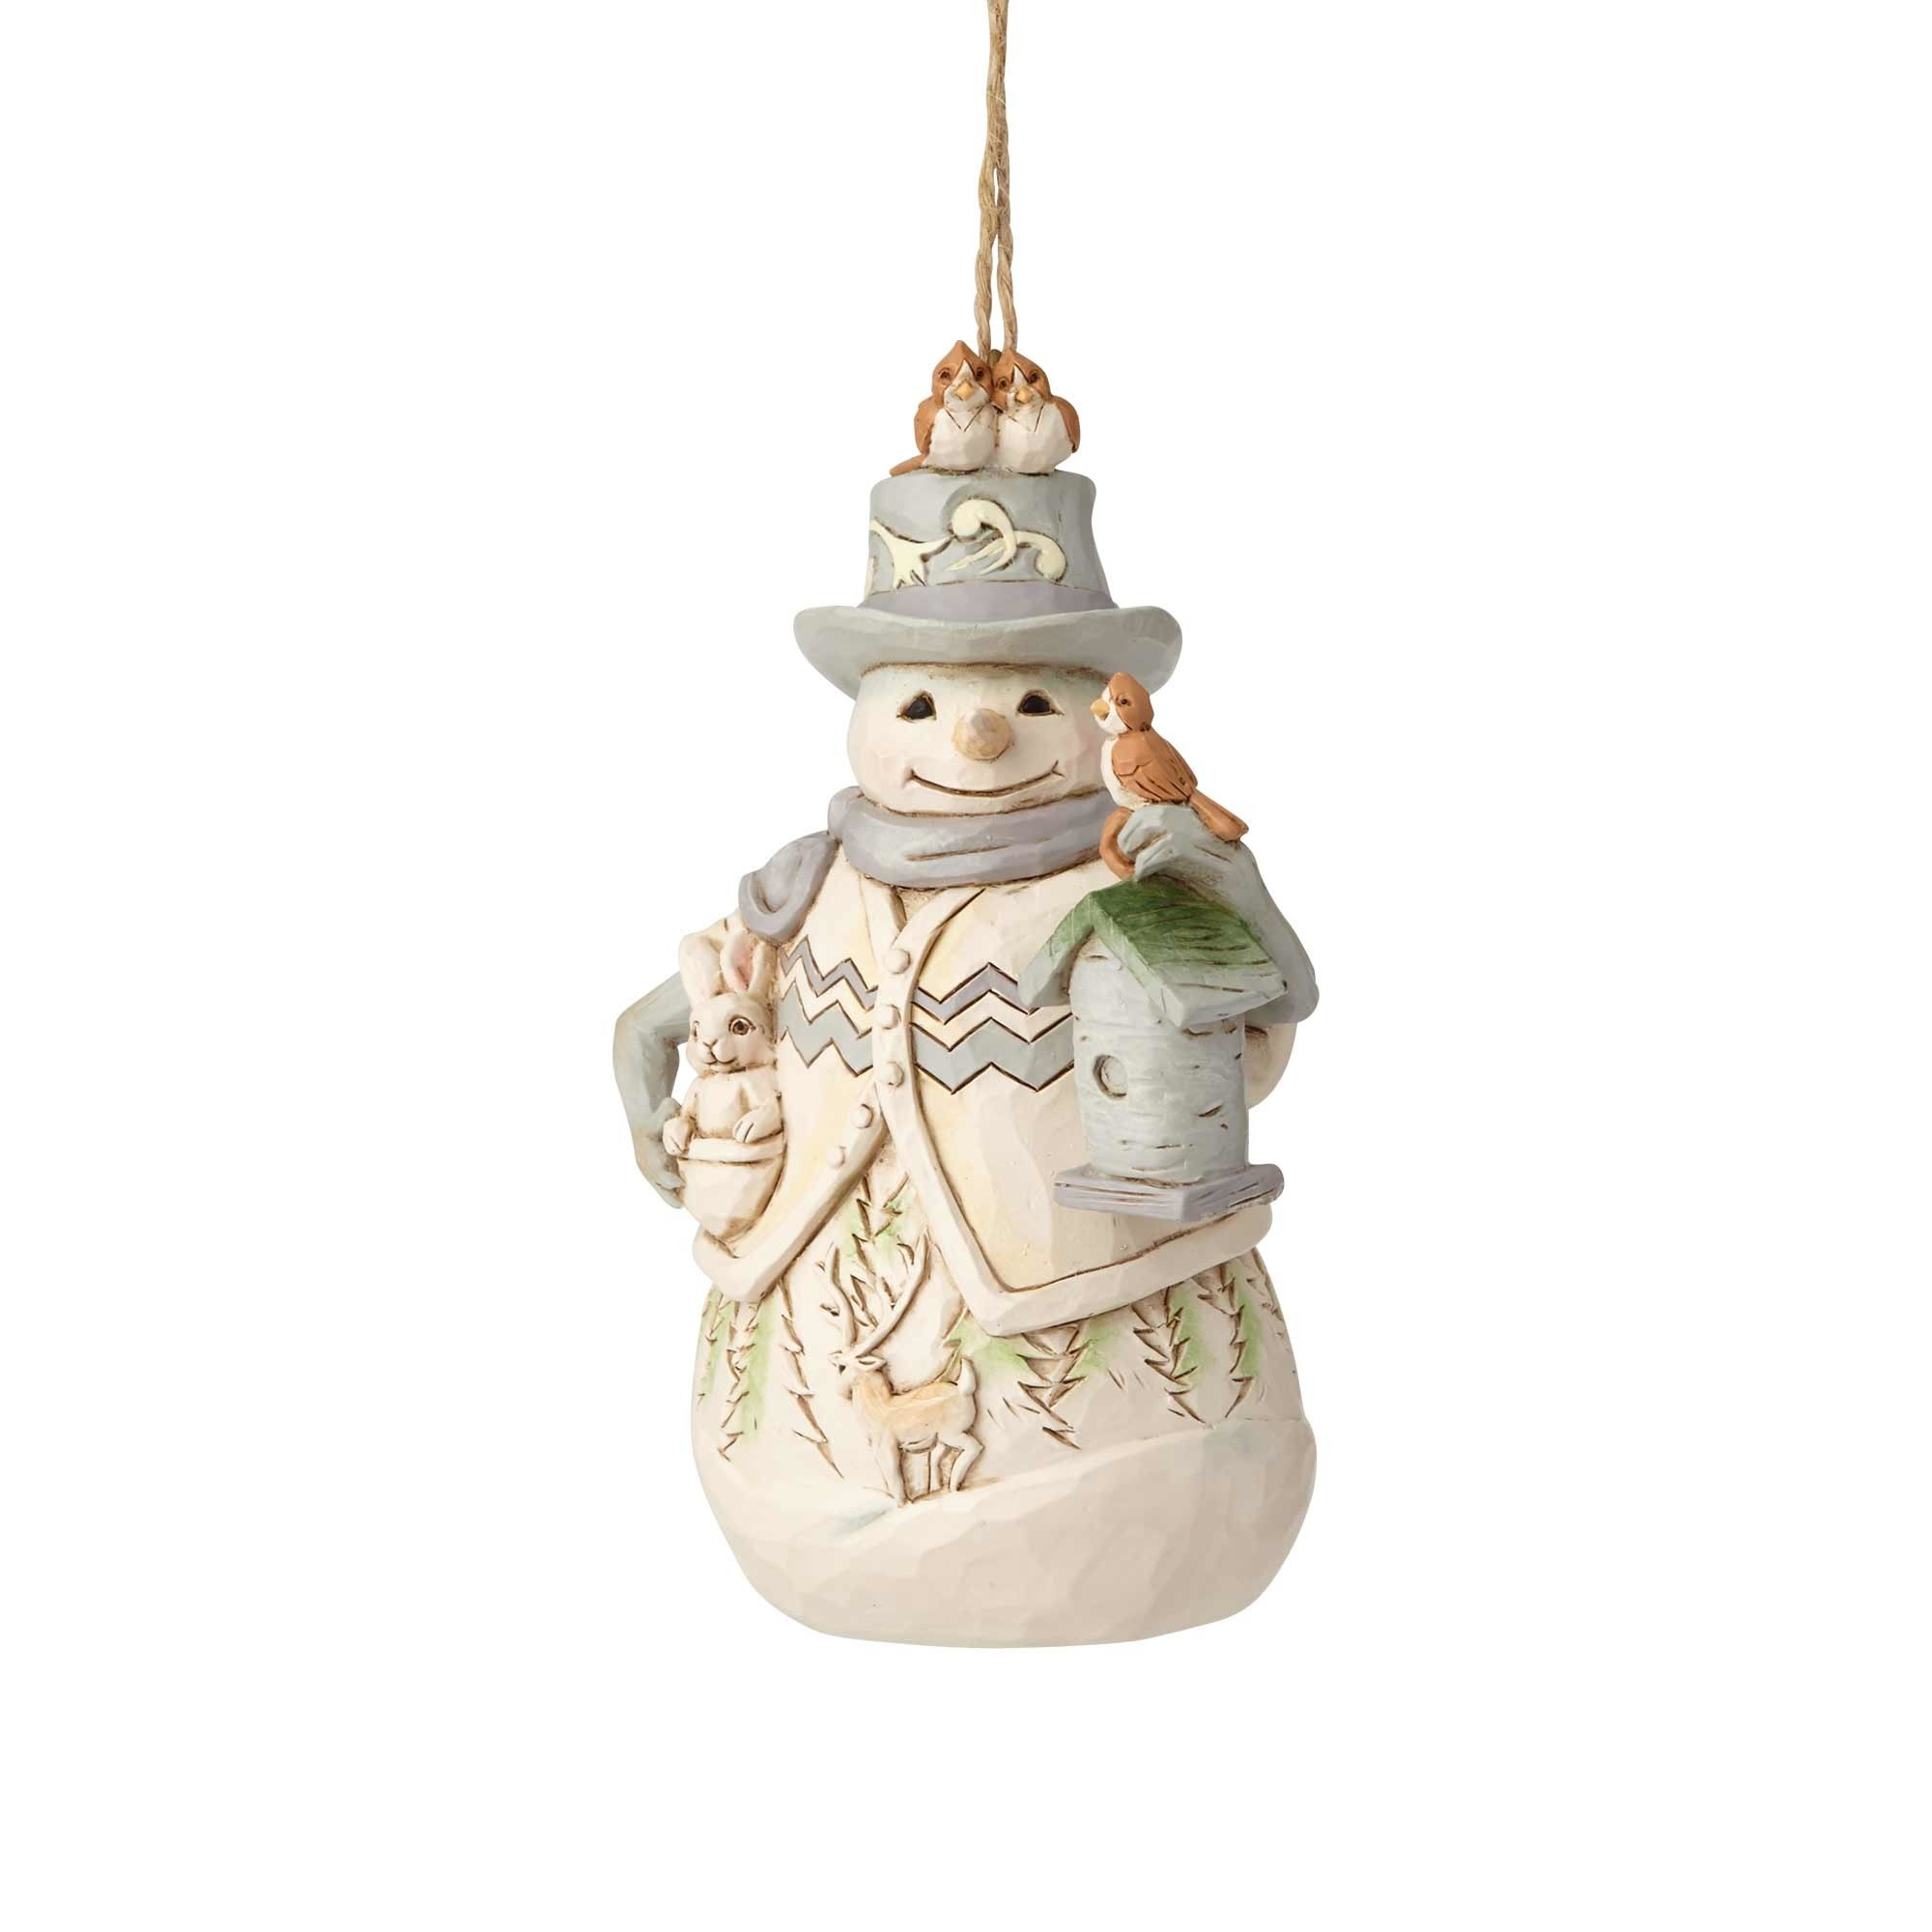 Jim Shore Woodland Snowman Ornament